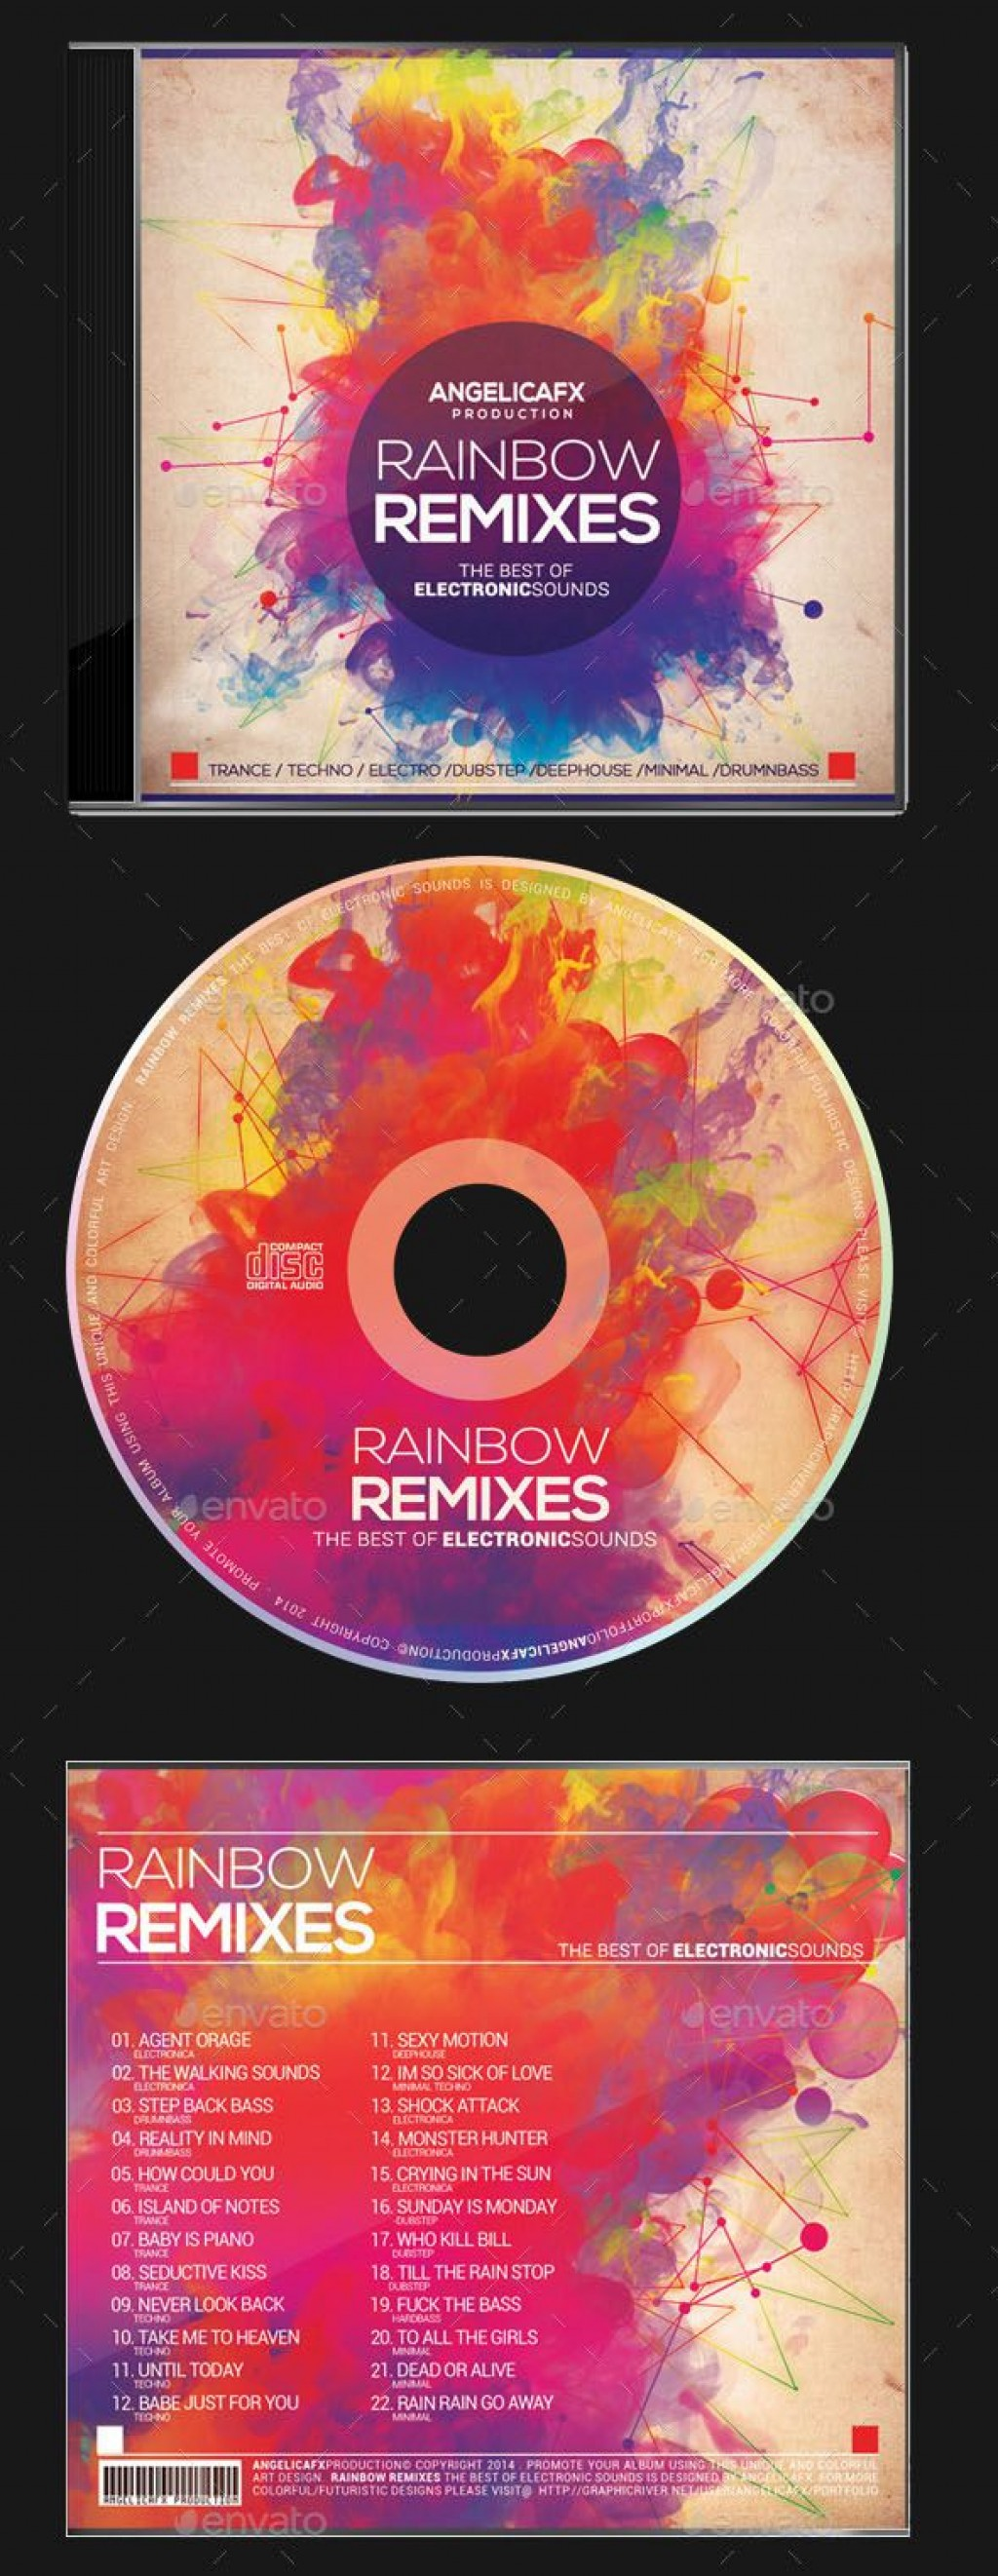 002 Unforgettable Free Cd Cover Design Template Photoshop Inspiration  Label Psd DownloadLarge